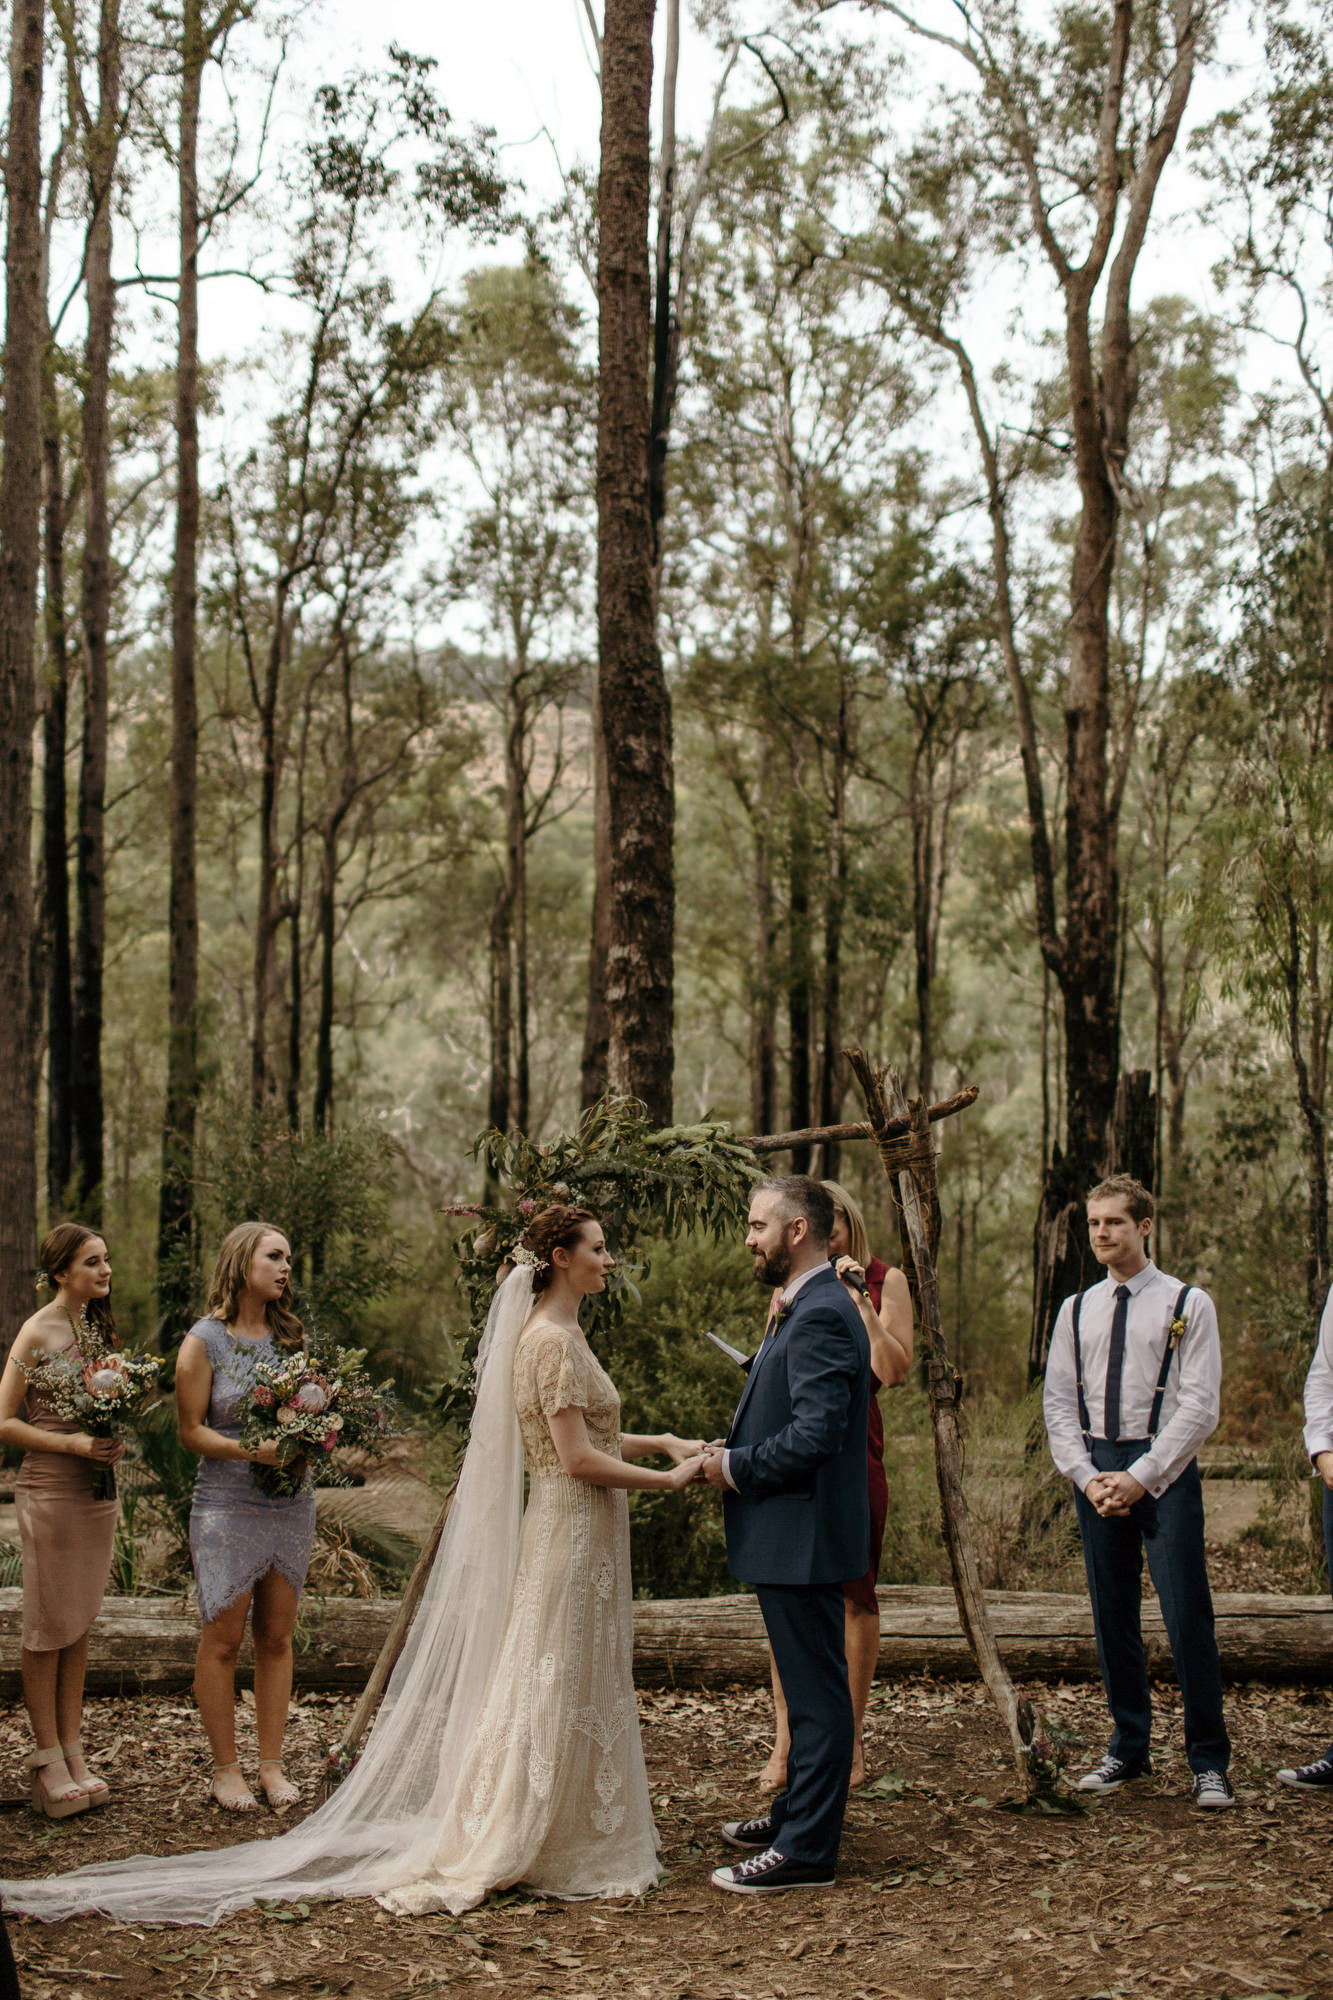 CARTER-ROSE-PHOTOGRAPHY-NICHOLAS-WEDDING-NANGA-BUSH-CAMP285.JPG